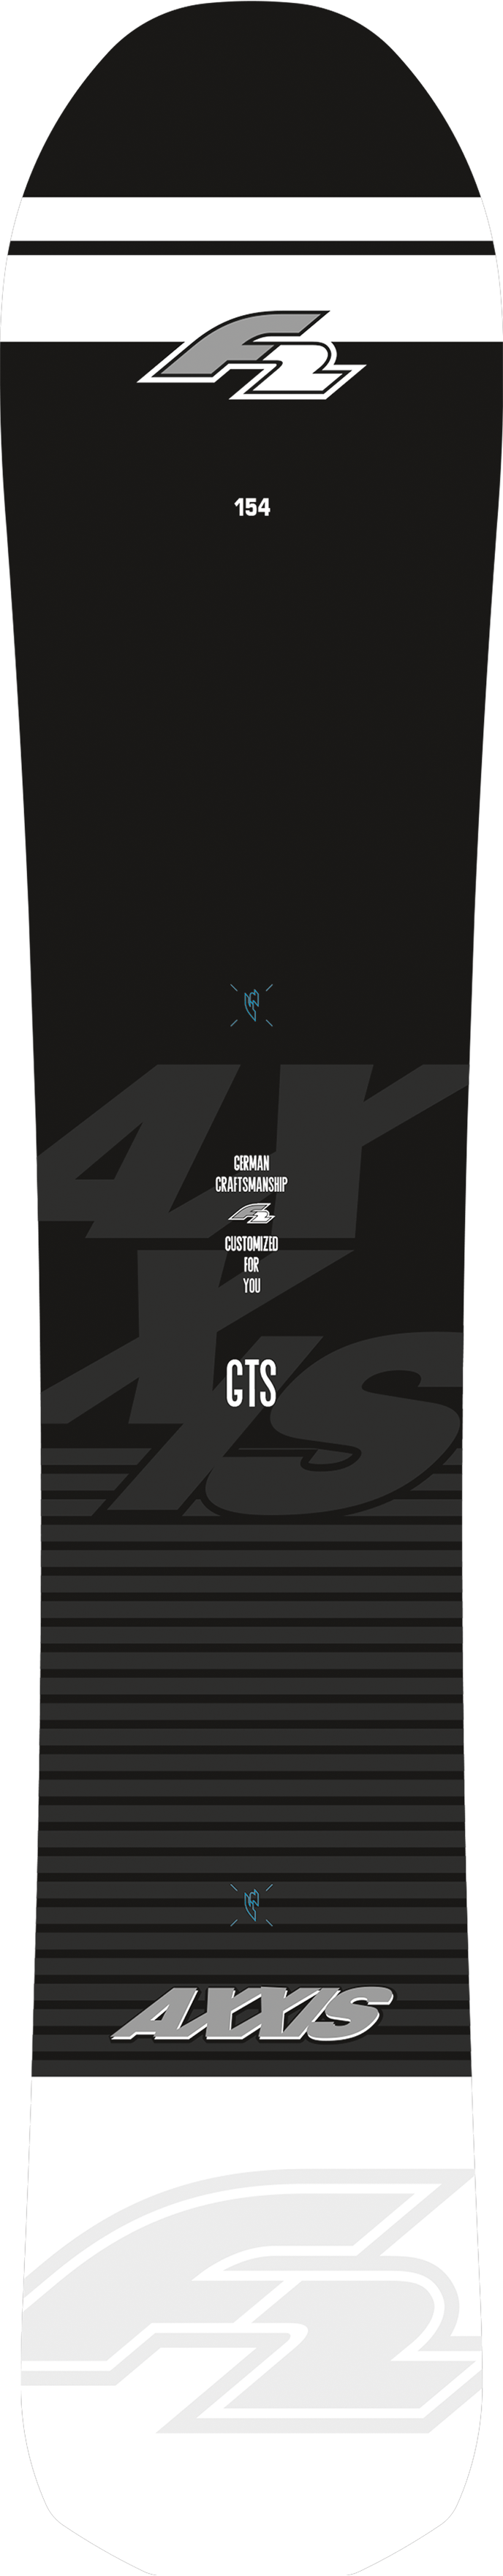 AXXIS GTS - Top